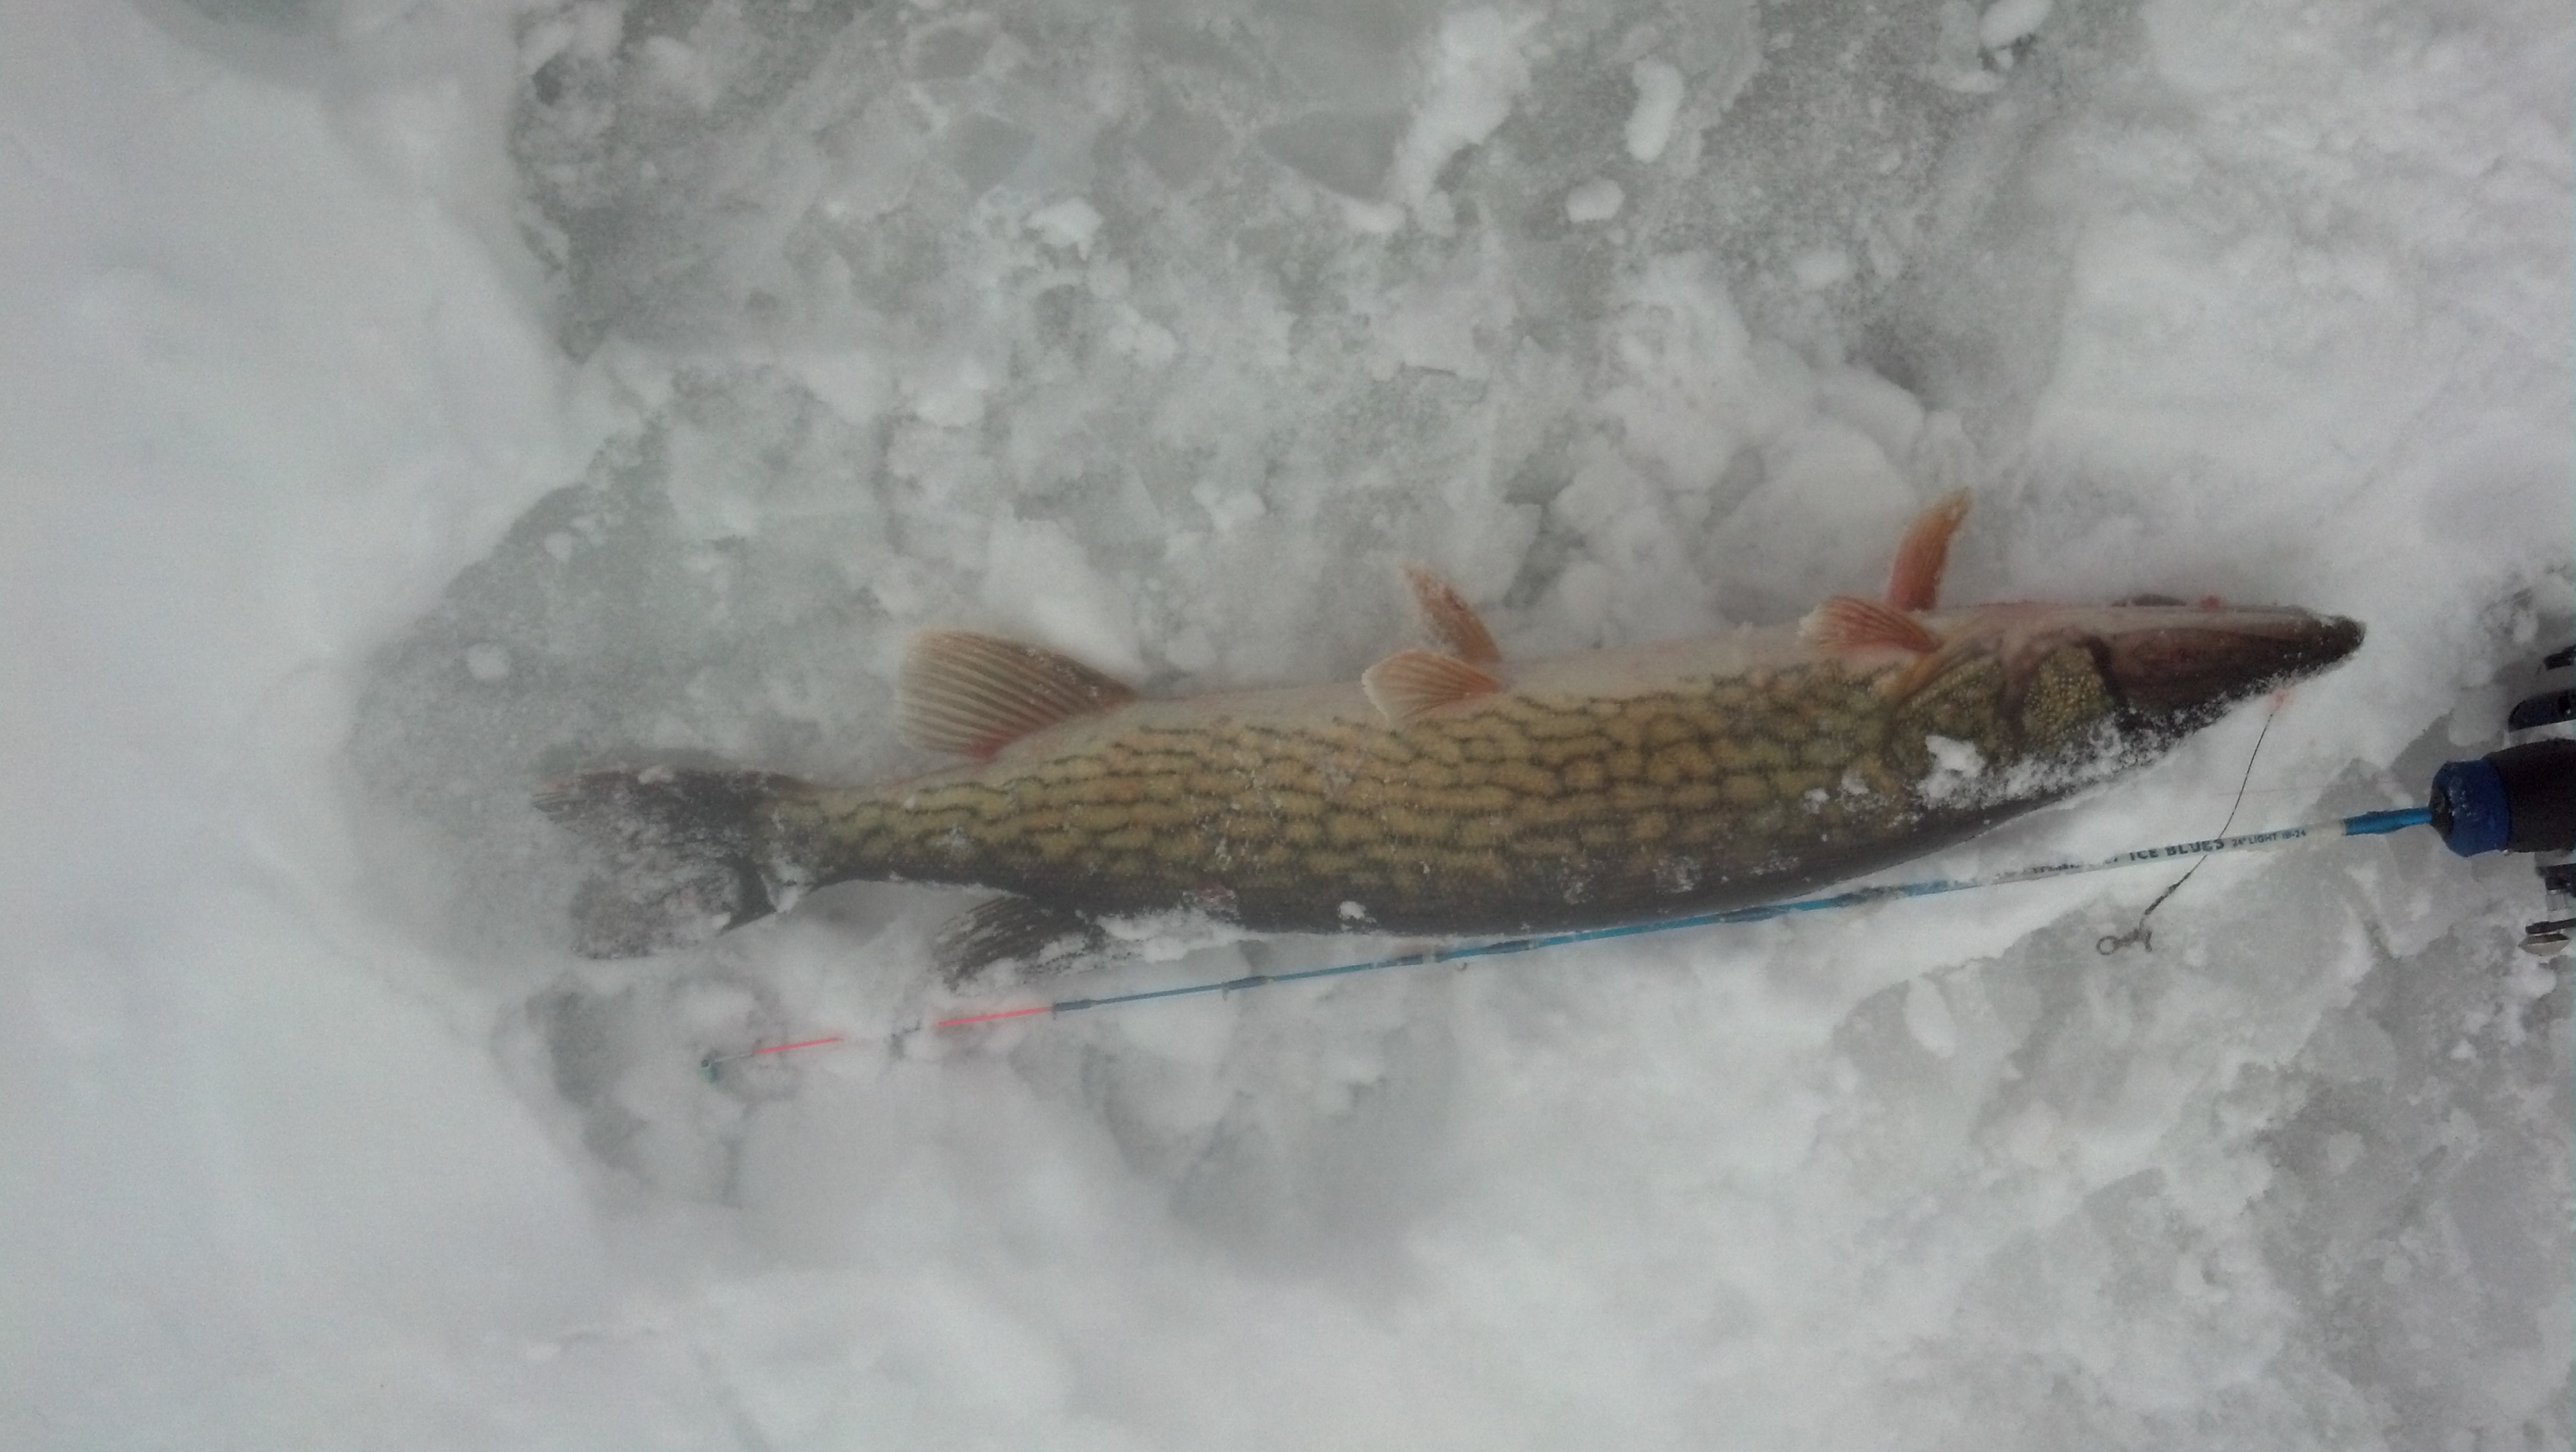 Bud Tae same NH  30 mph winds, snow squalls and a slow day fishing. This was the only one